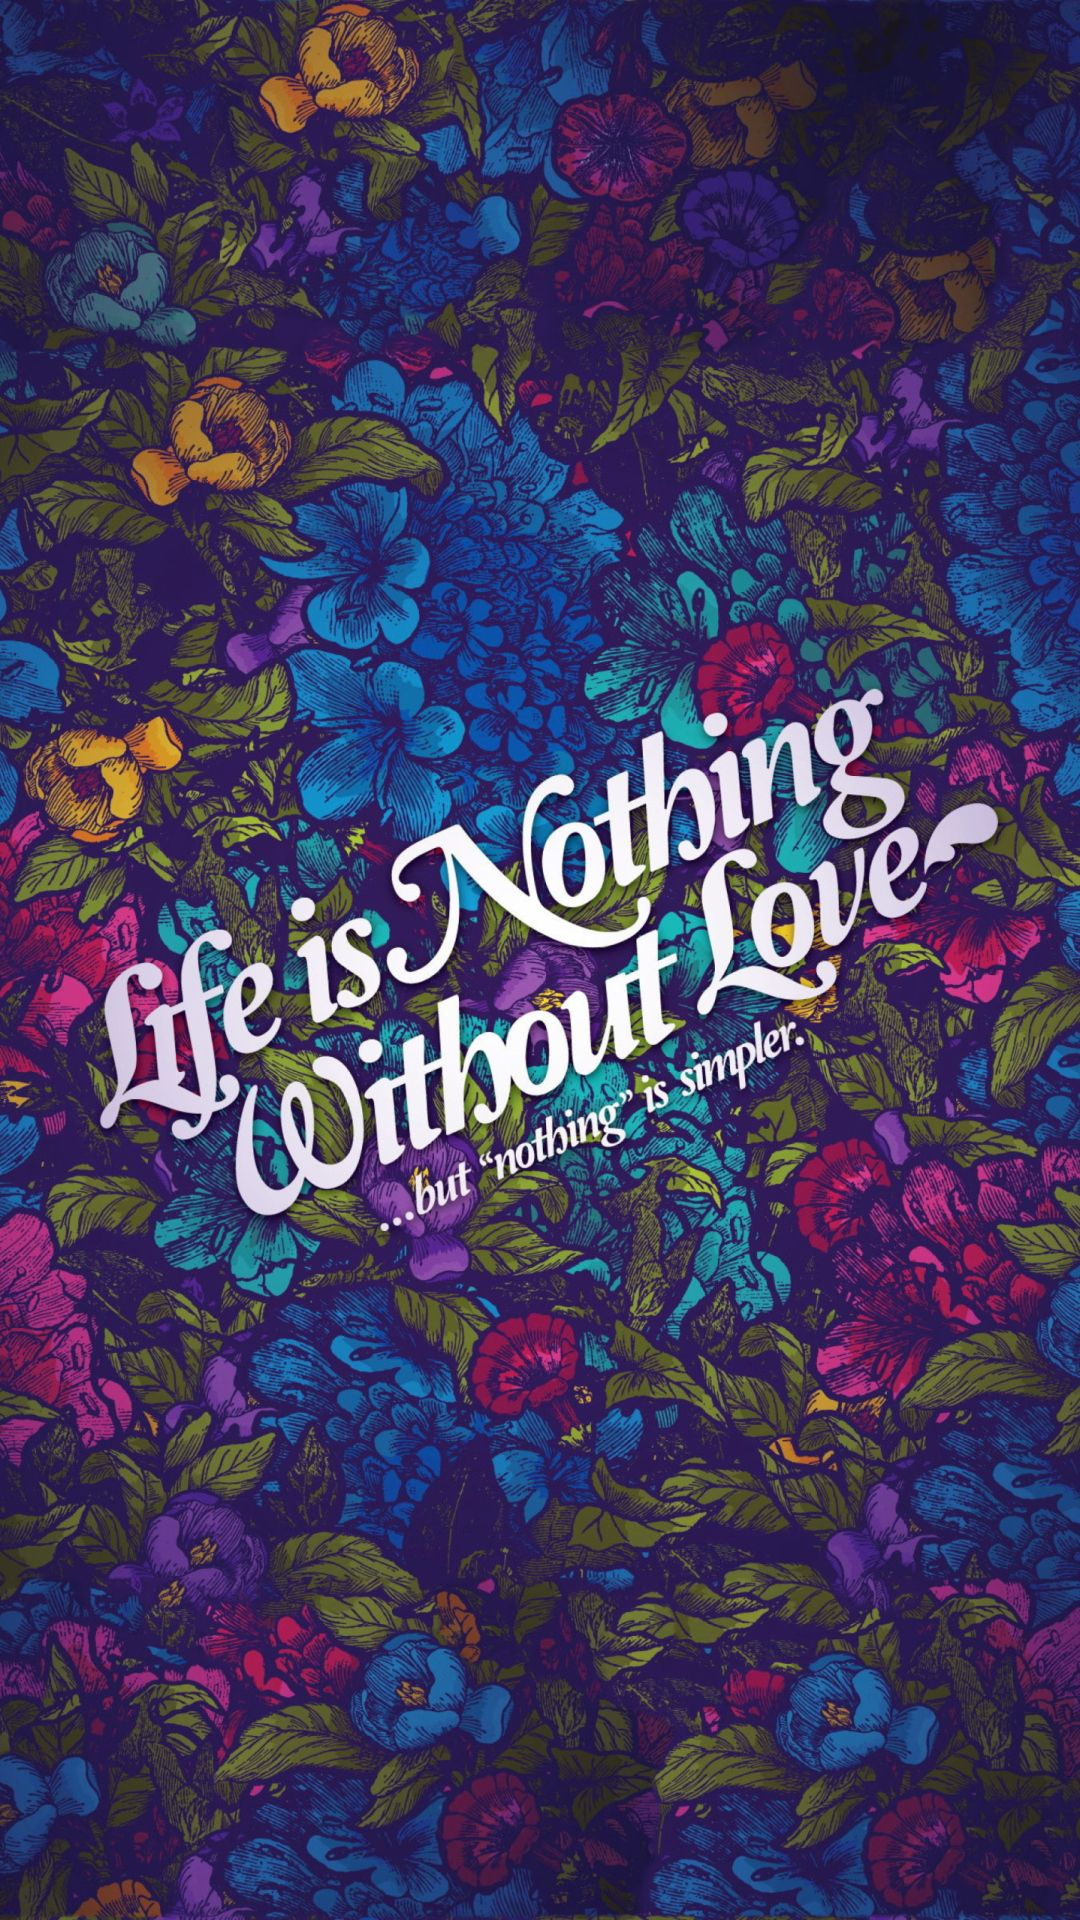 Life Is Nothing Without Love - Tap to see more ...